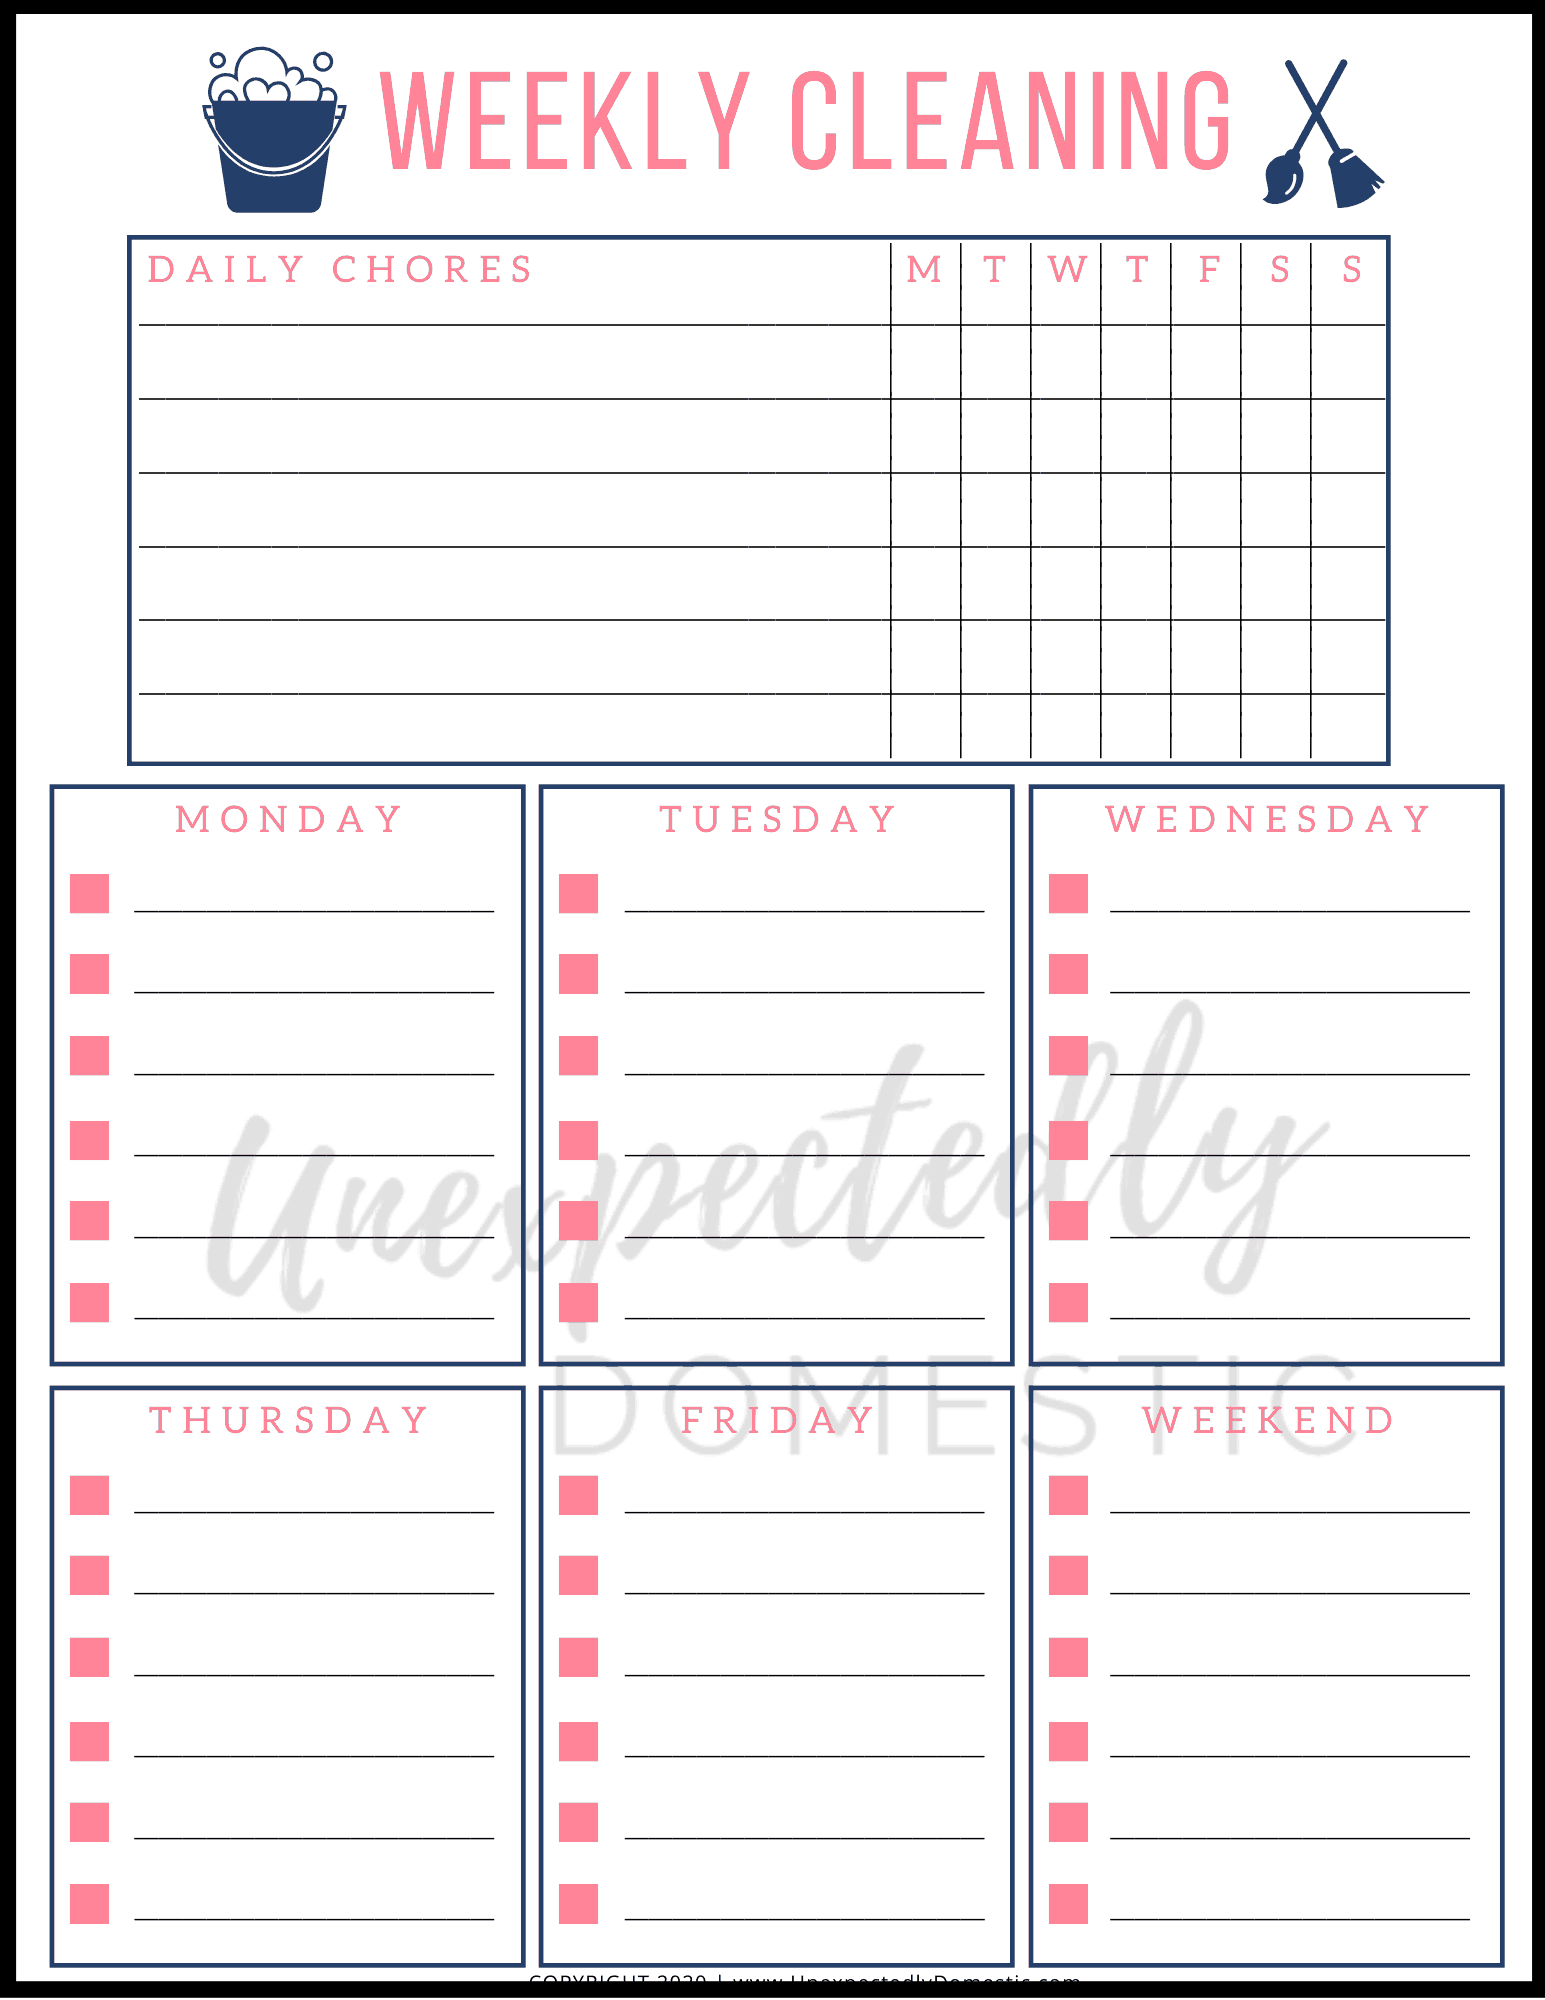 Easy weekly cleaning schedule! This simple weekly house-cleaning routine is a realistic schedule that walks you through what to clean and when, room by room. Free printable blank cleaning schedule template included!